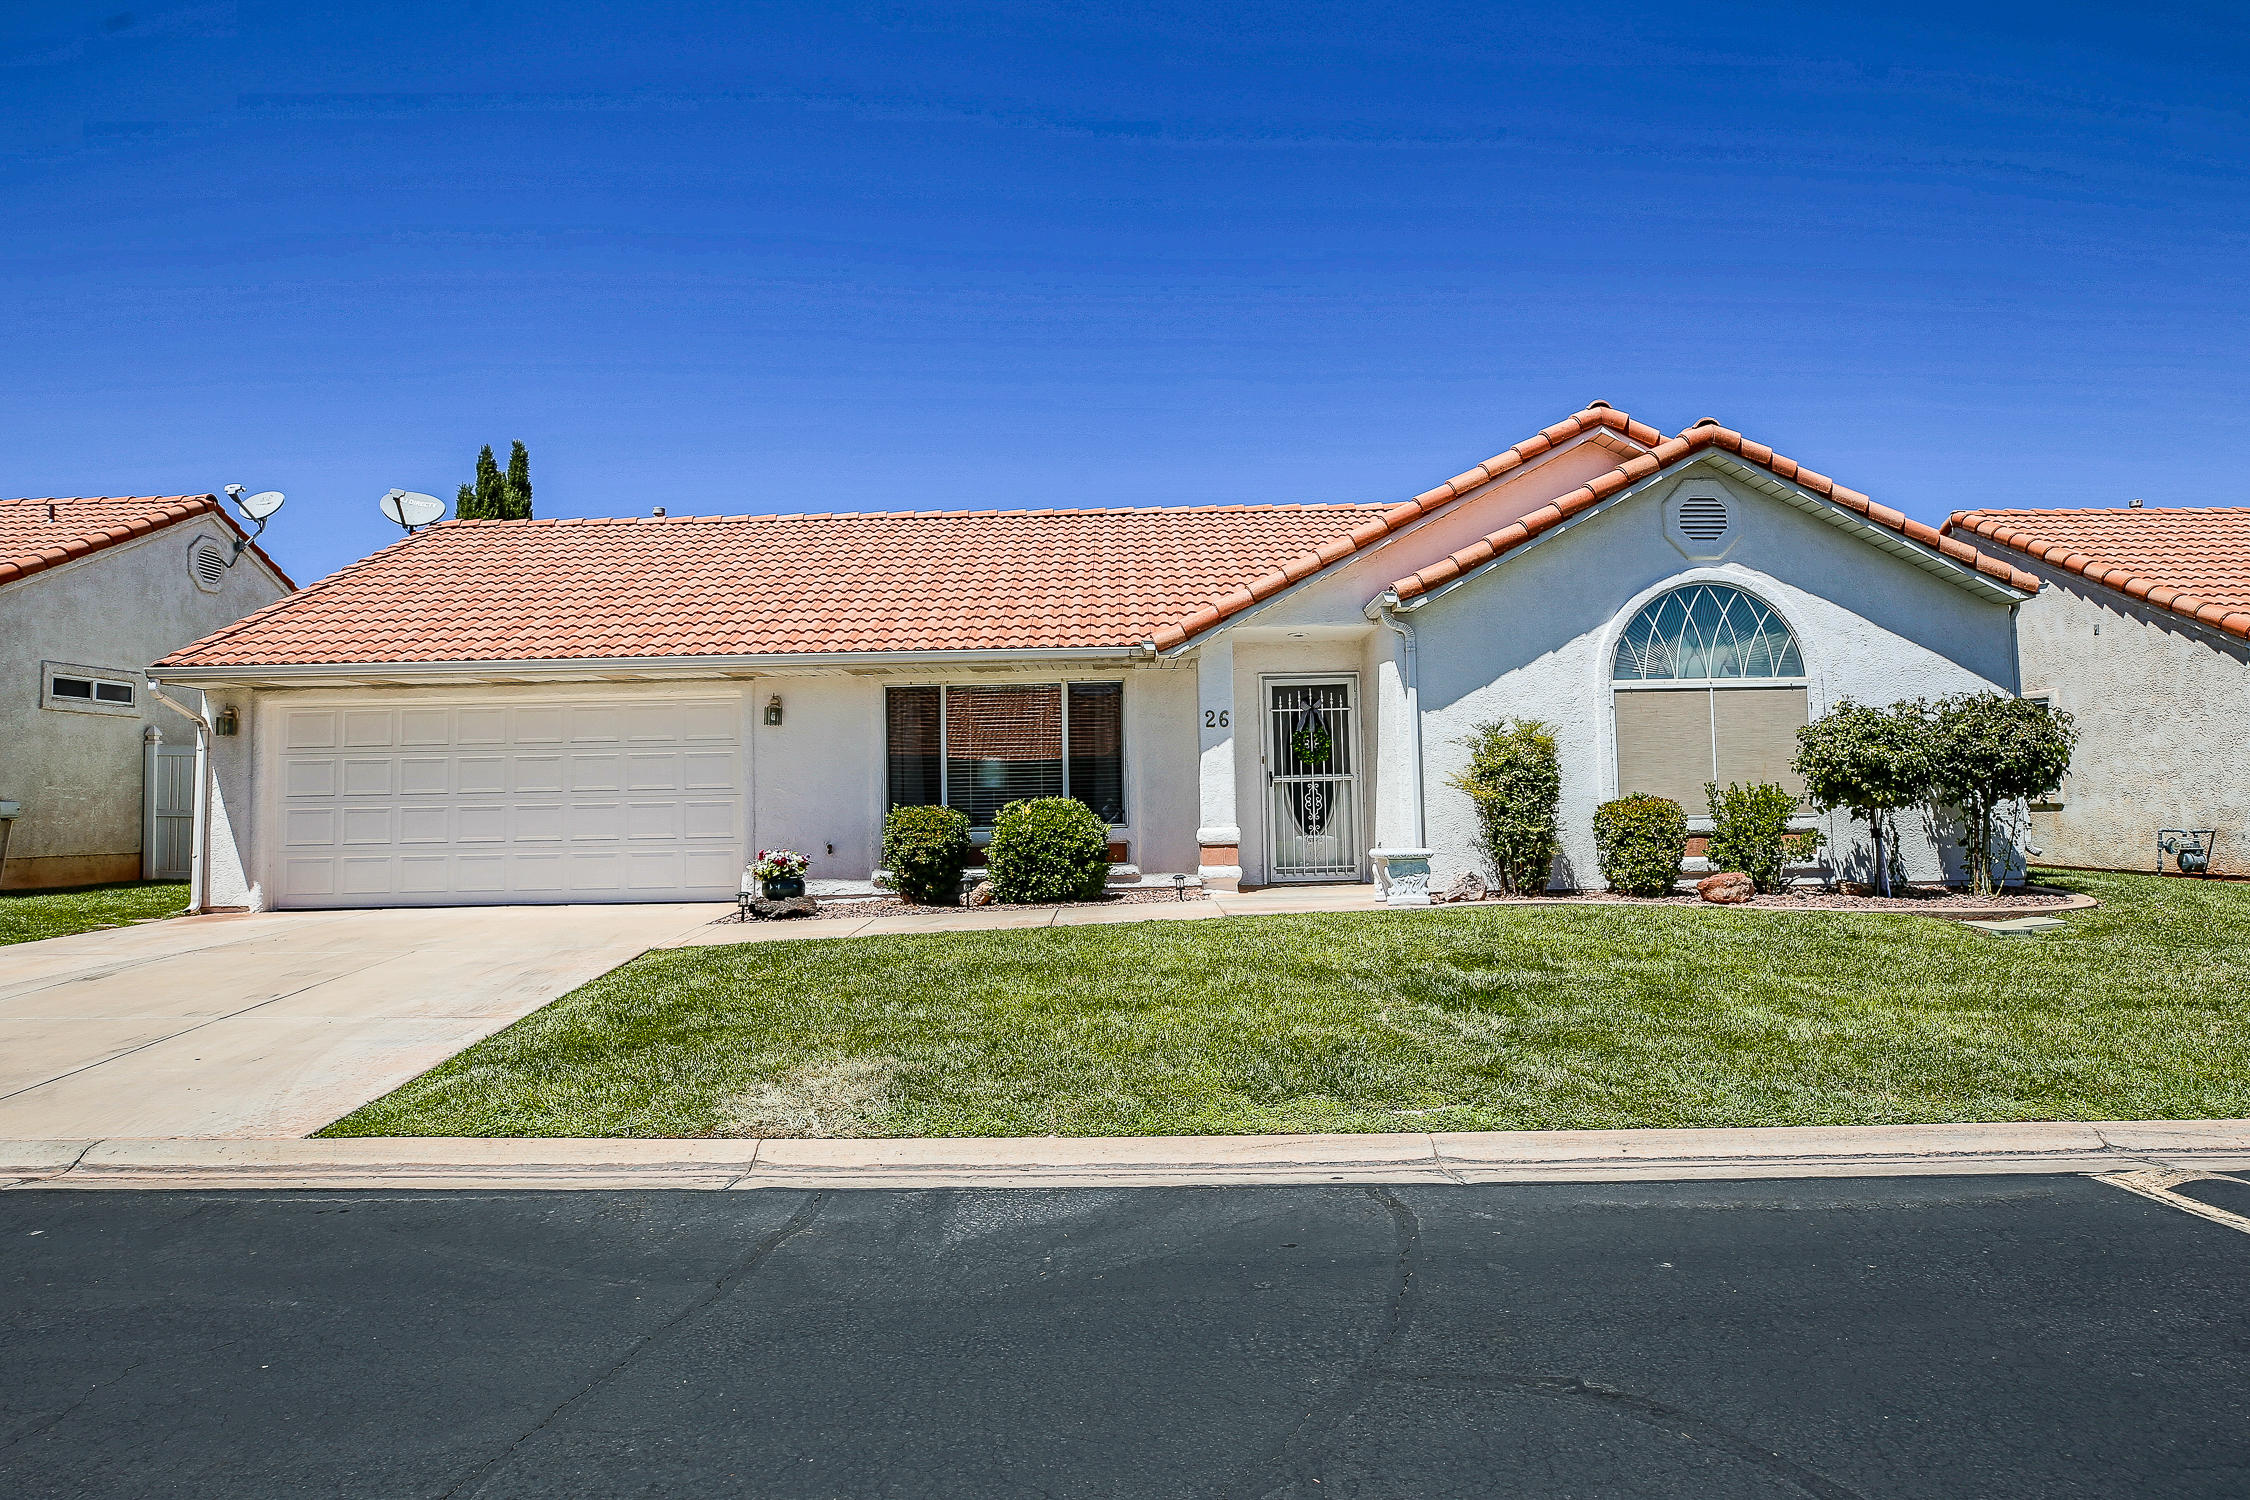 646 N 2450 E Unit 26, St George Ut 84790